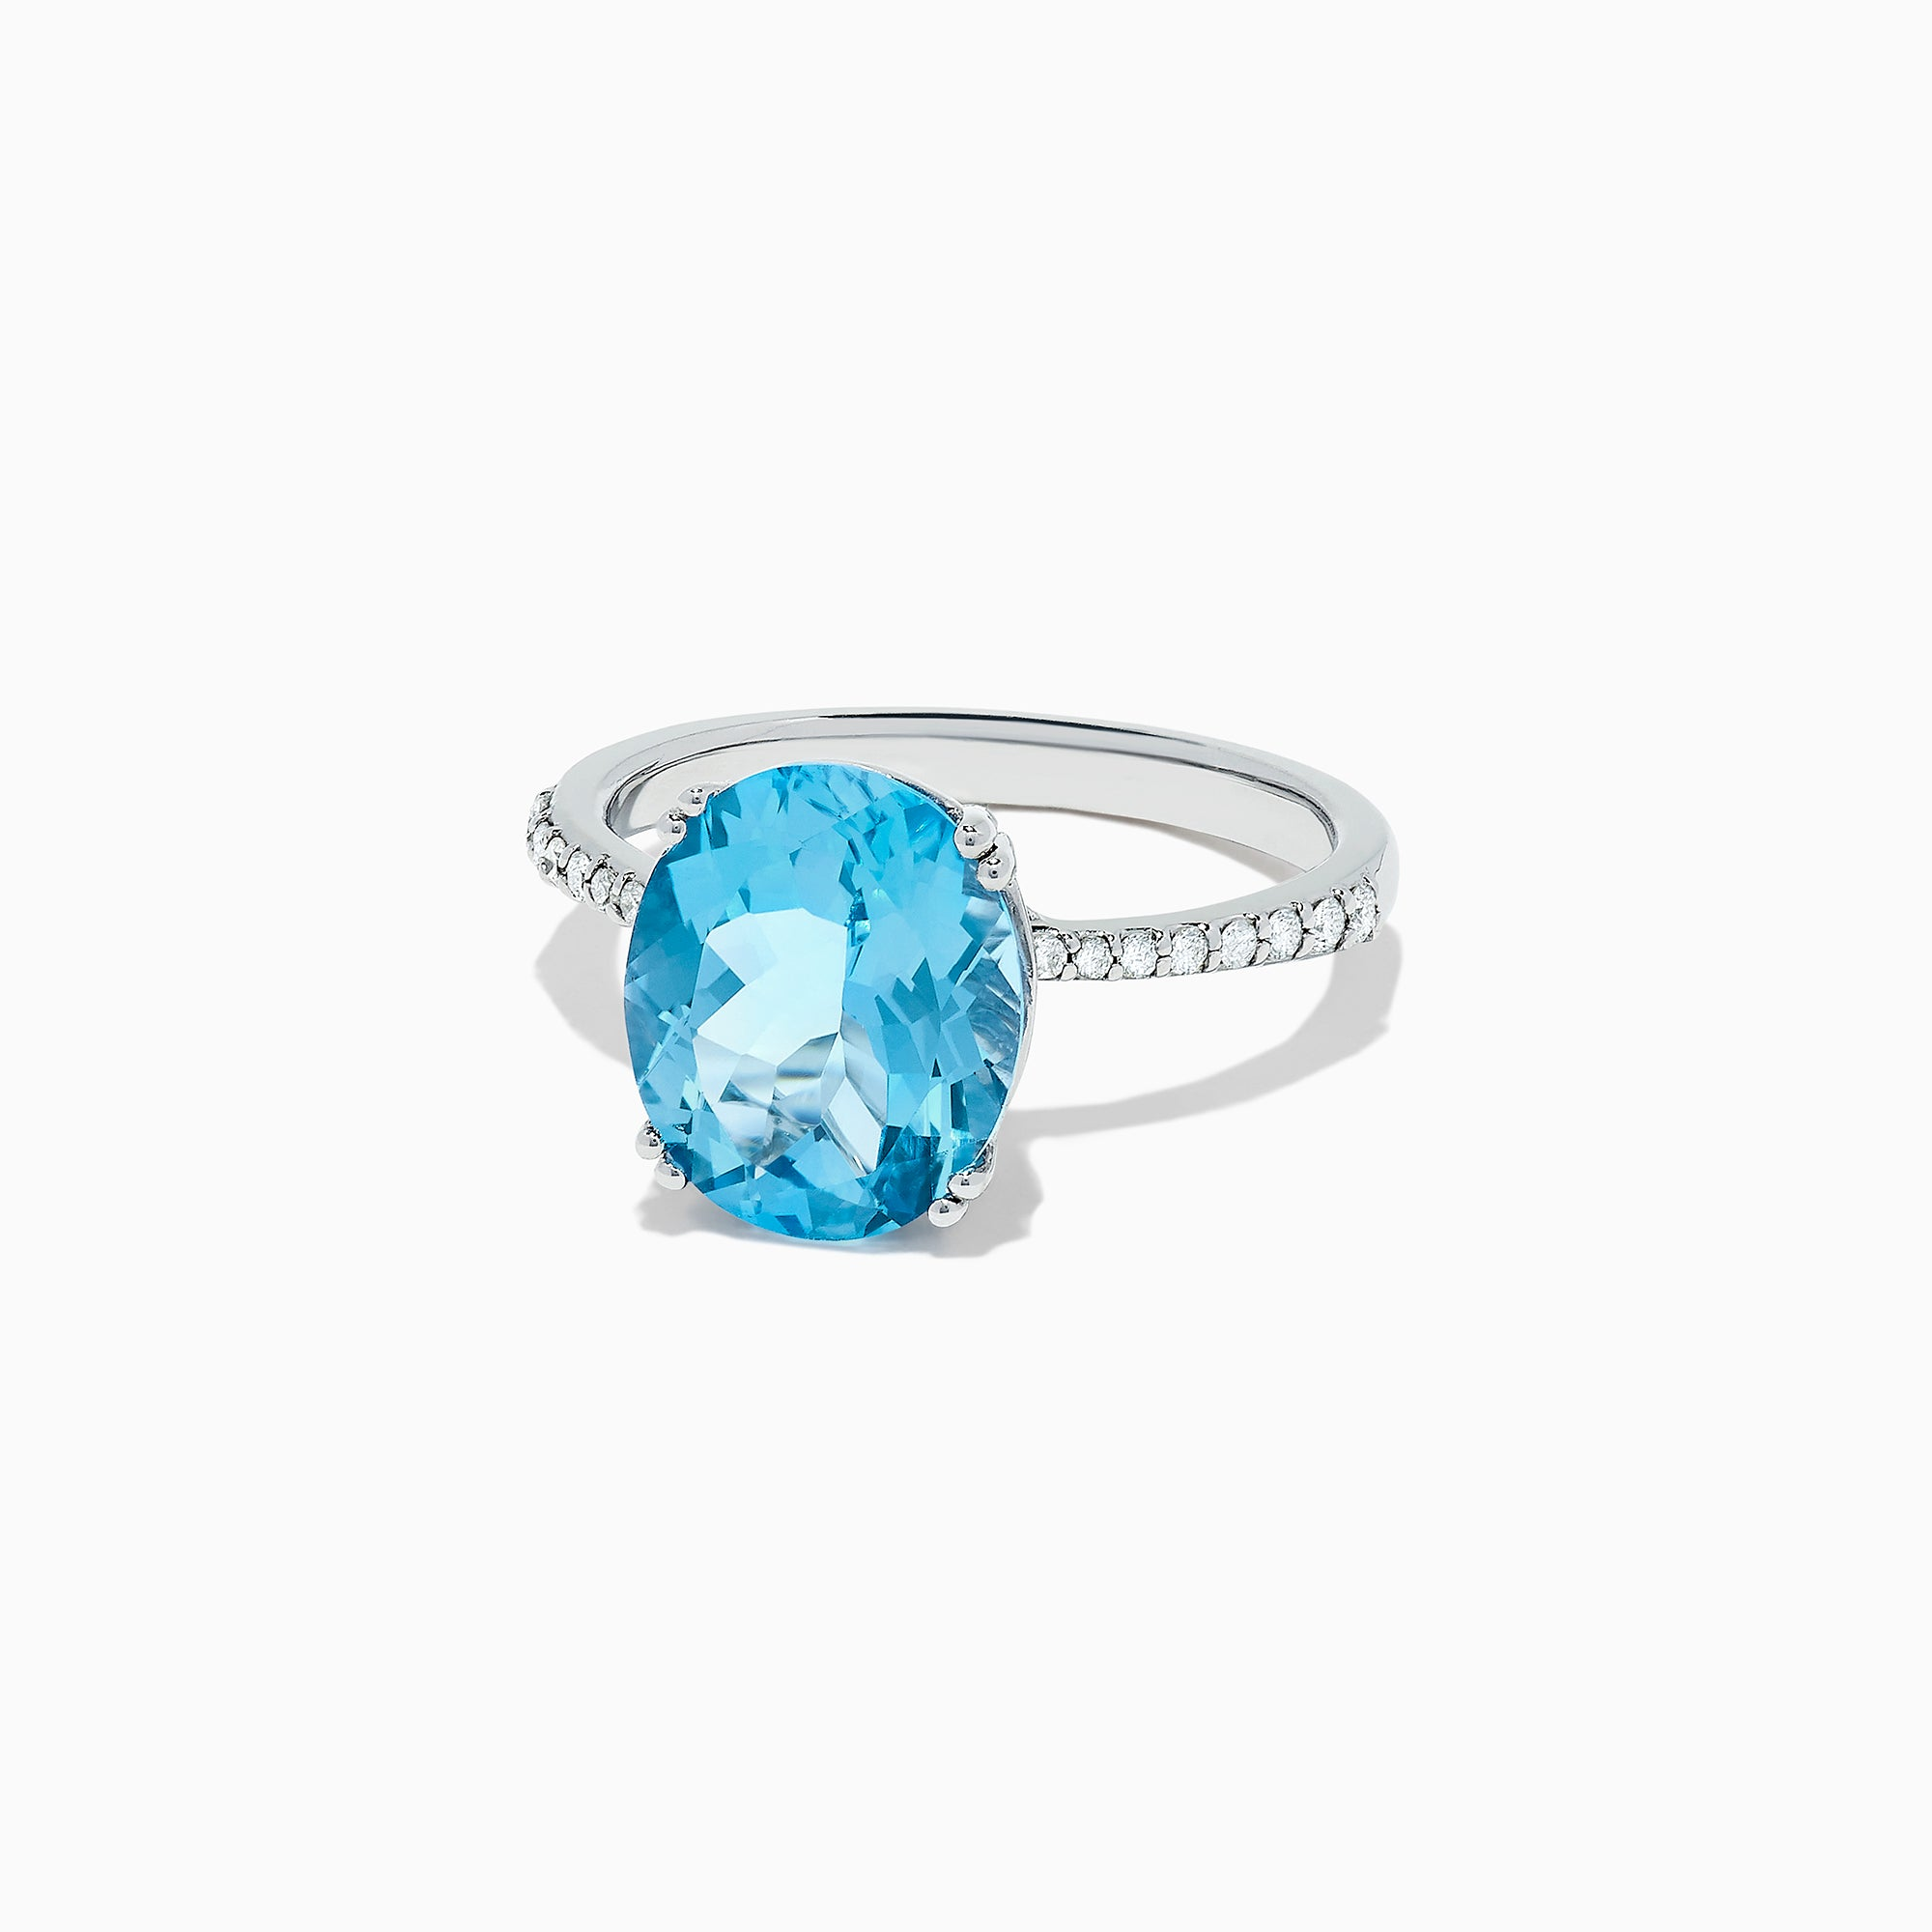 Effy 14K White Gold Blue Topaz and Diamond Cocktail Ring, 6.04 TCW